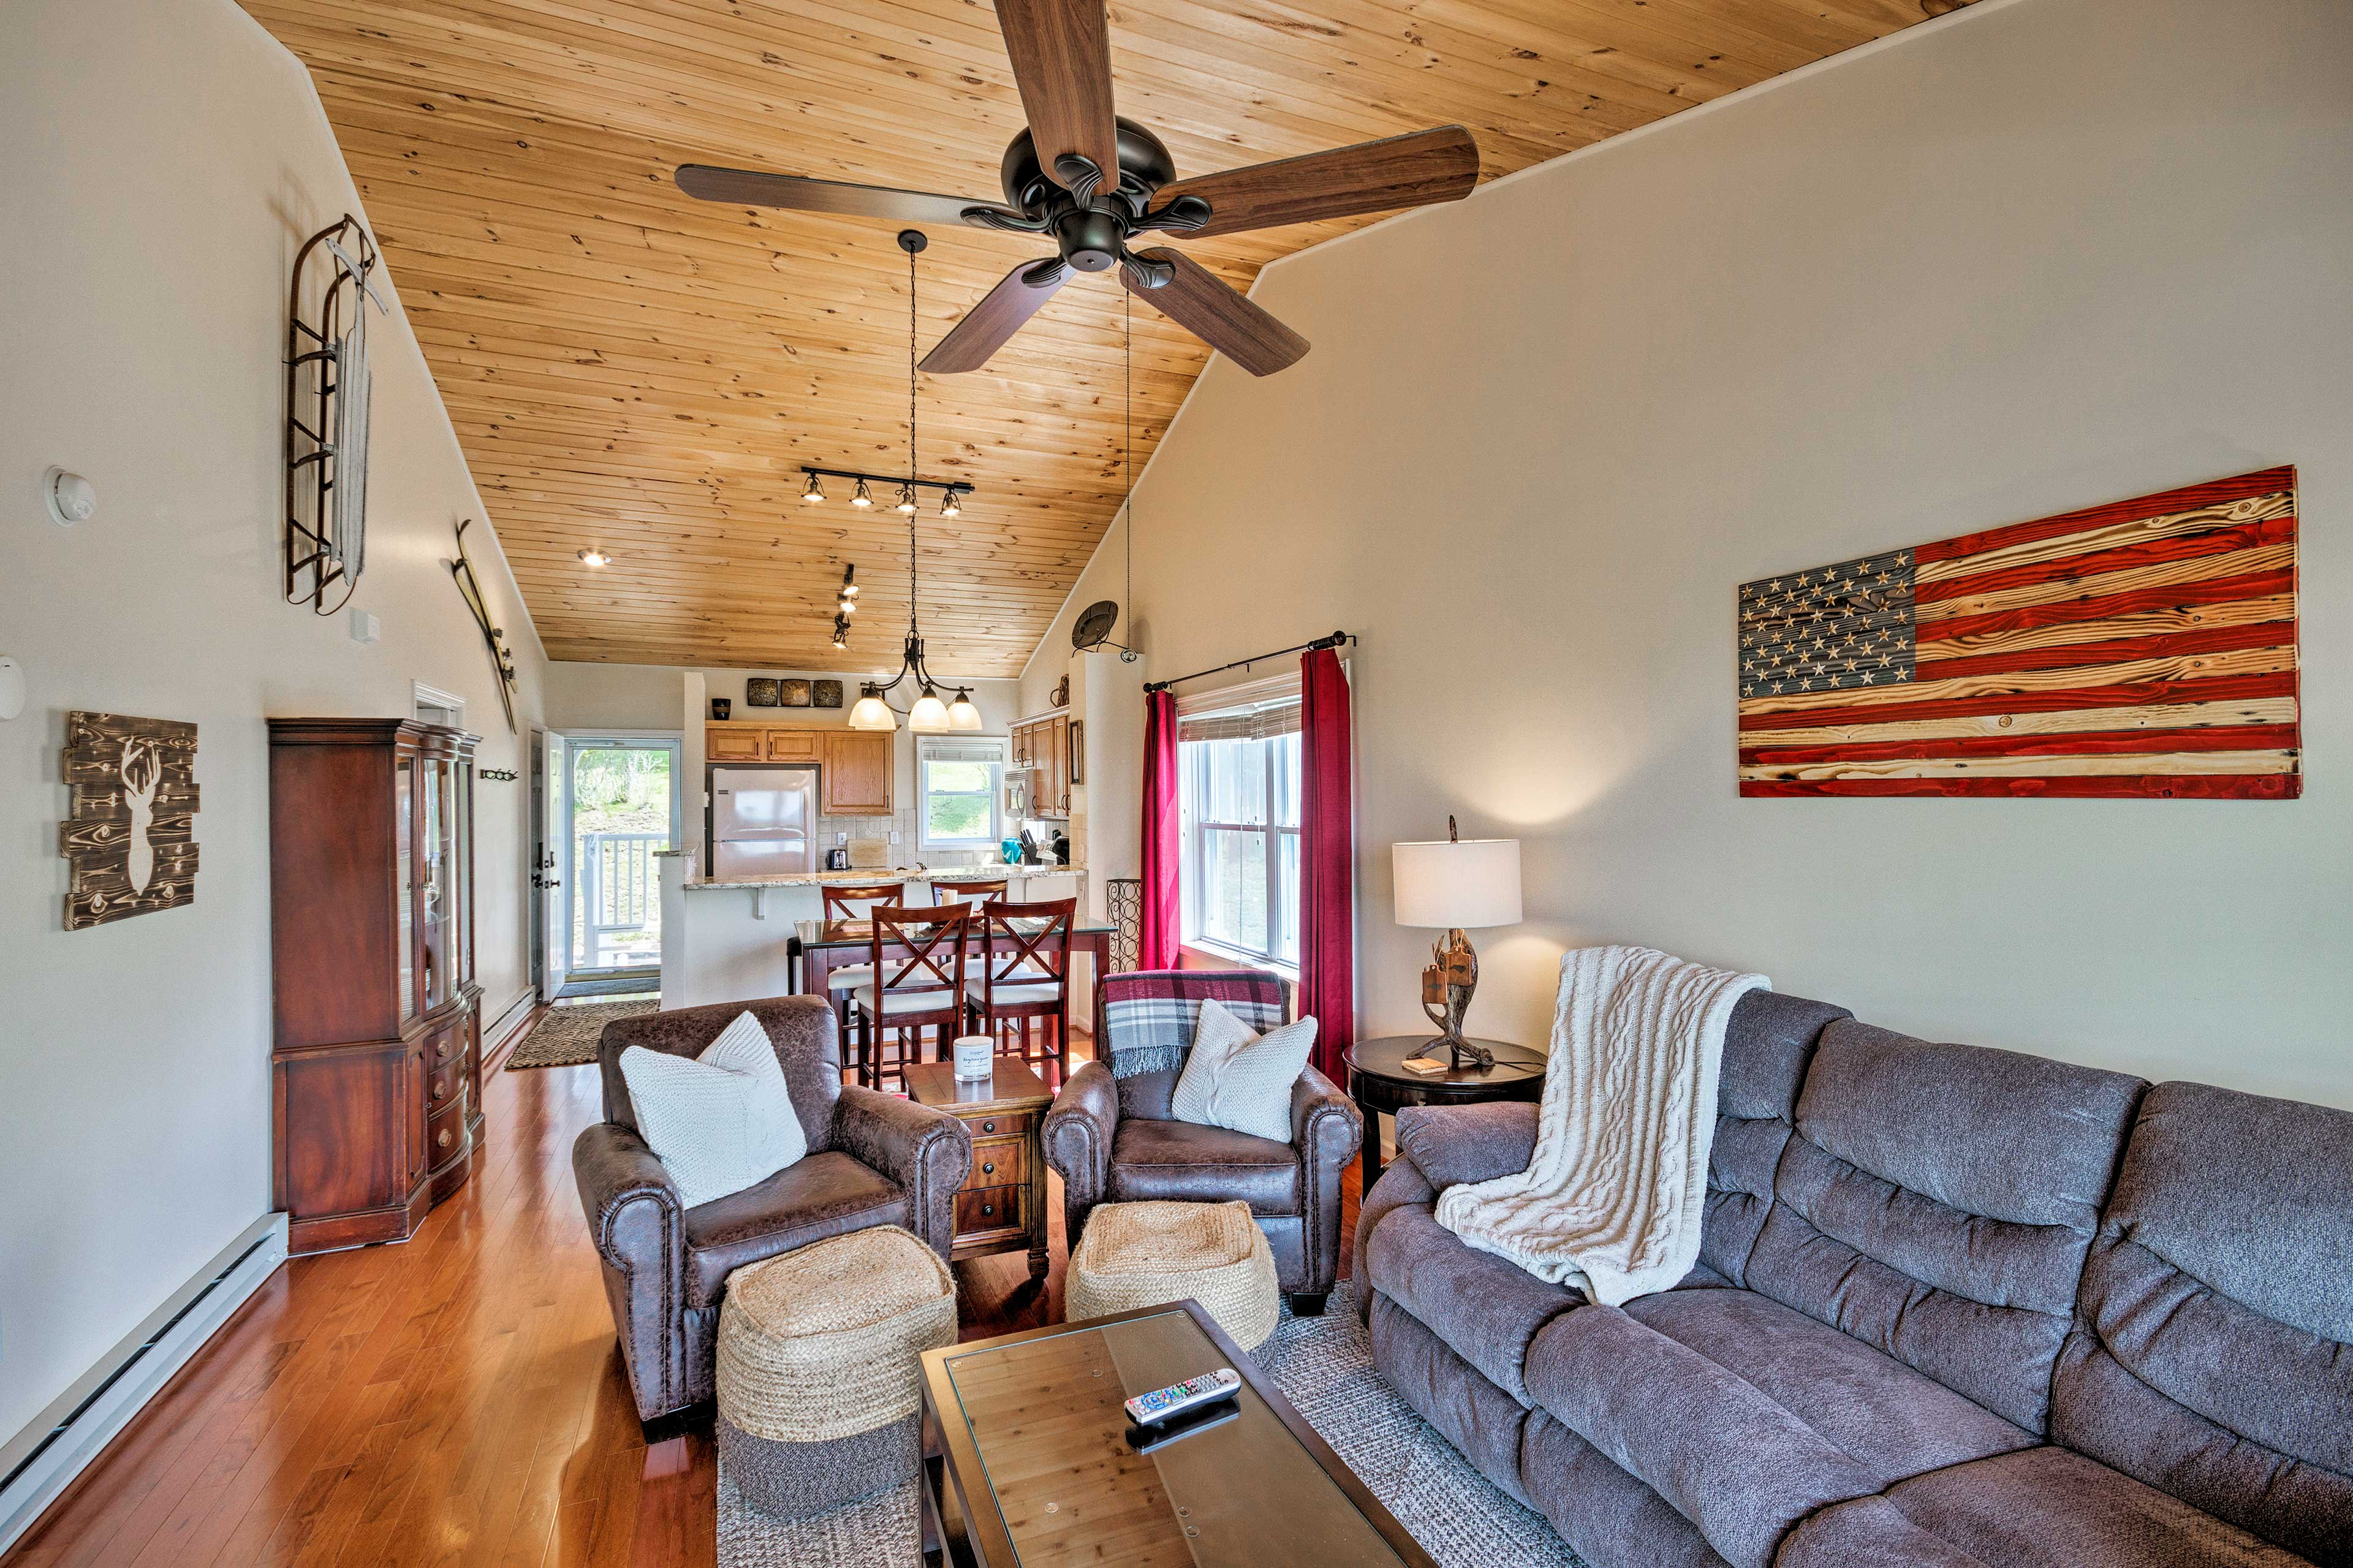 The open floor plan makes it easy to socialize in this cozy unit.